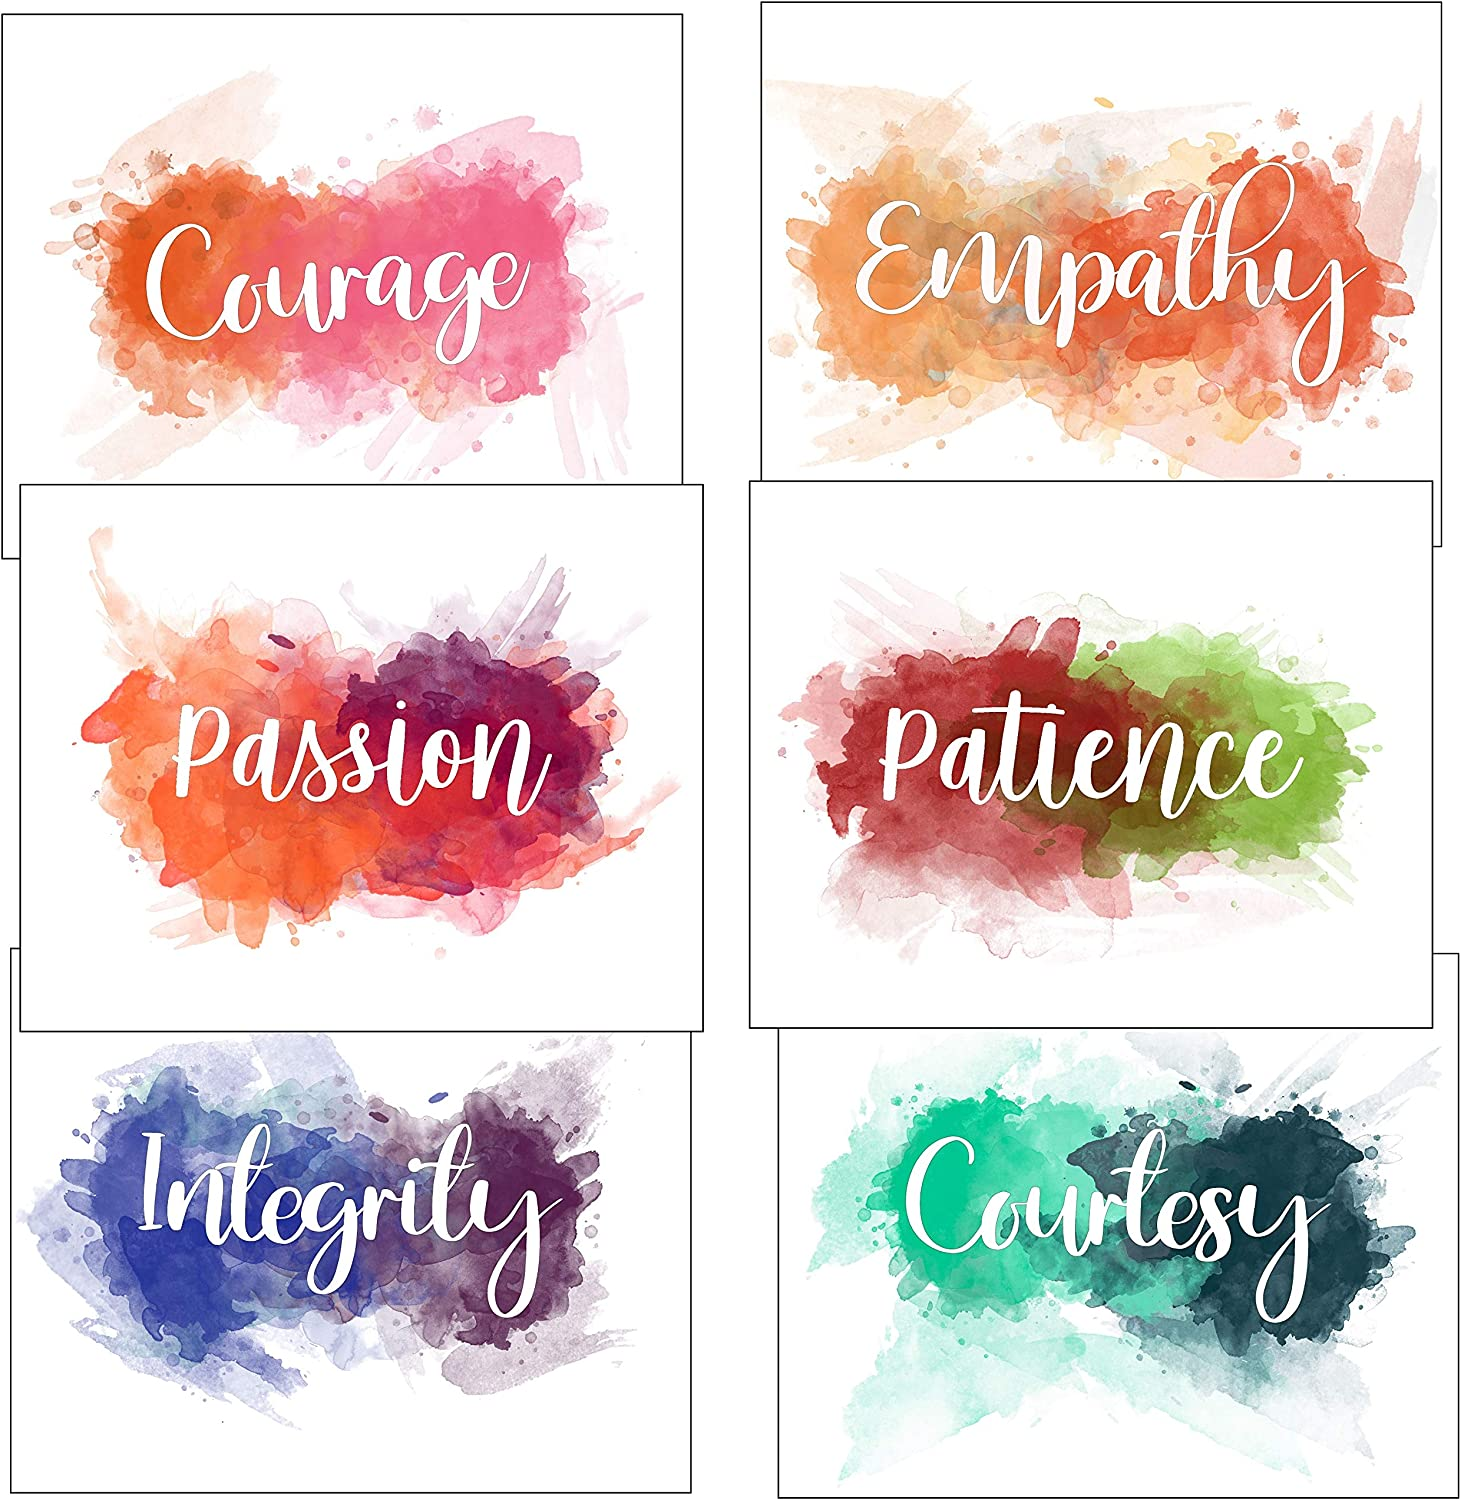 Istrion Inspirational Wall Art Best Human Qualities Watercolor Abstract Colorful Wall Decor Motivational Poster Kids Teens Adults Home Office School Classroom Gym Set of 6 Prints 8